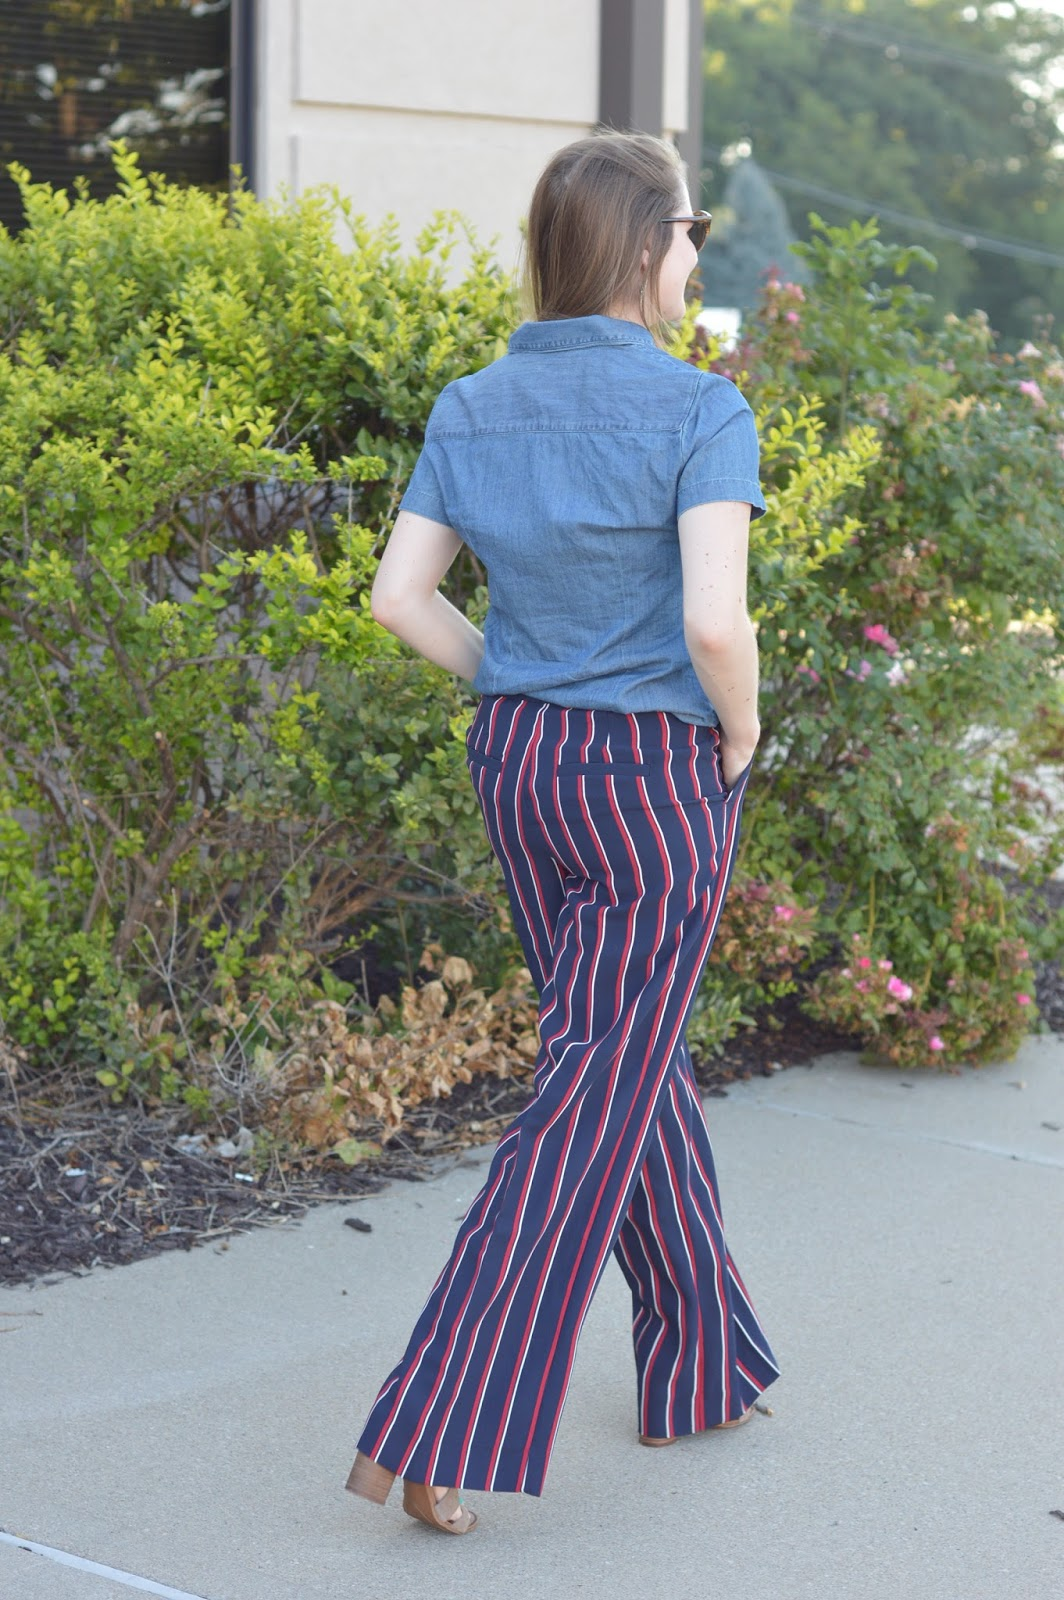 work outfit ideas | a memory of us | what to wear to work this fall | fall outfit ideas | striped dress pants | new ways to style dress pants | a memory of us |